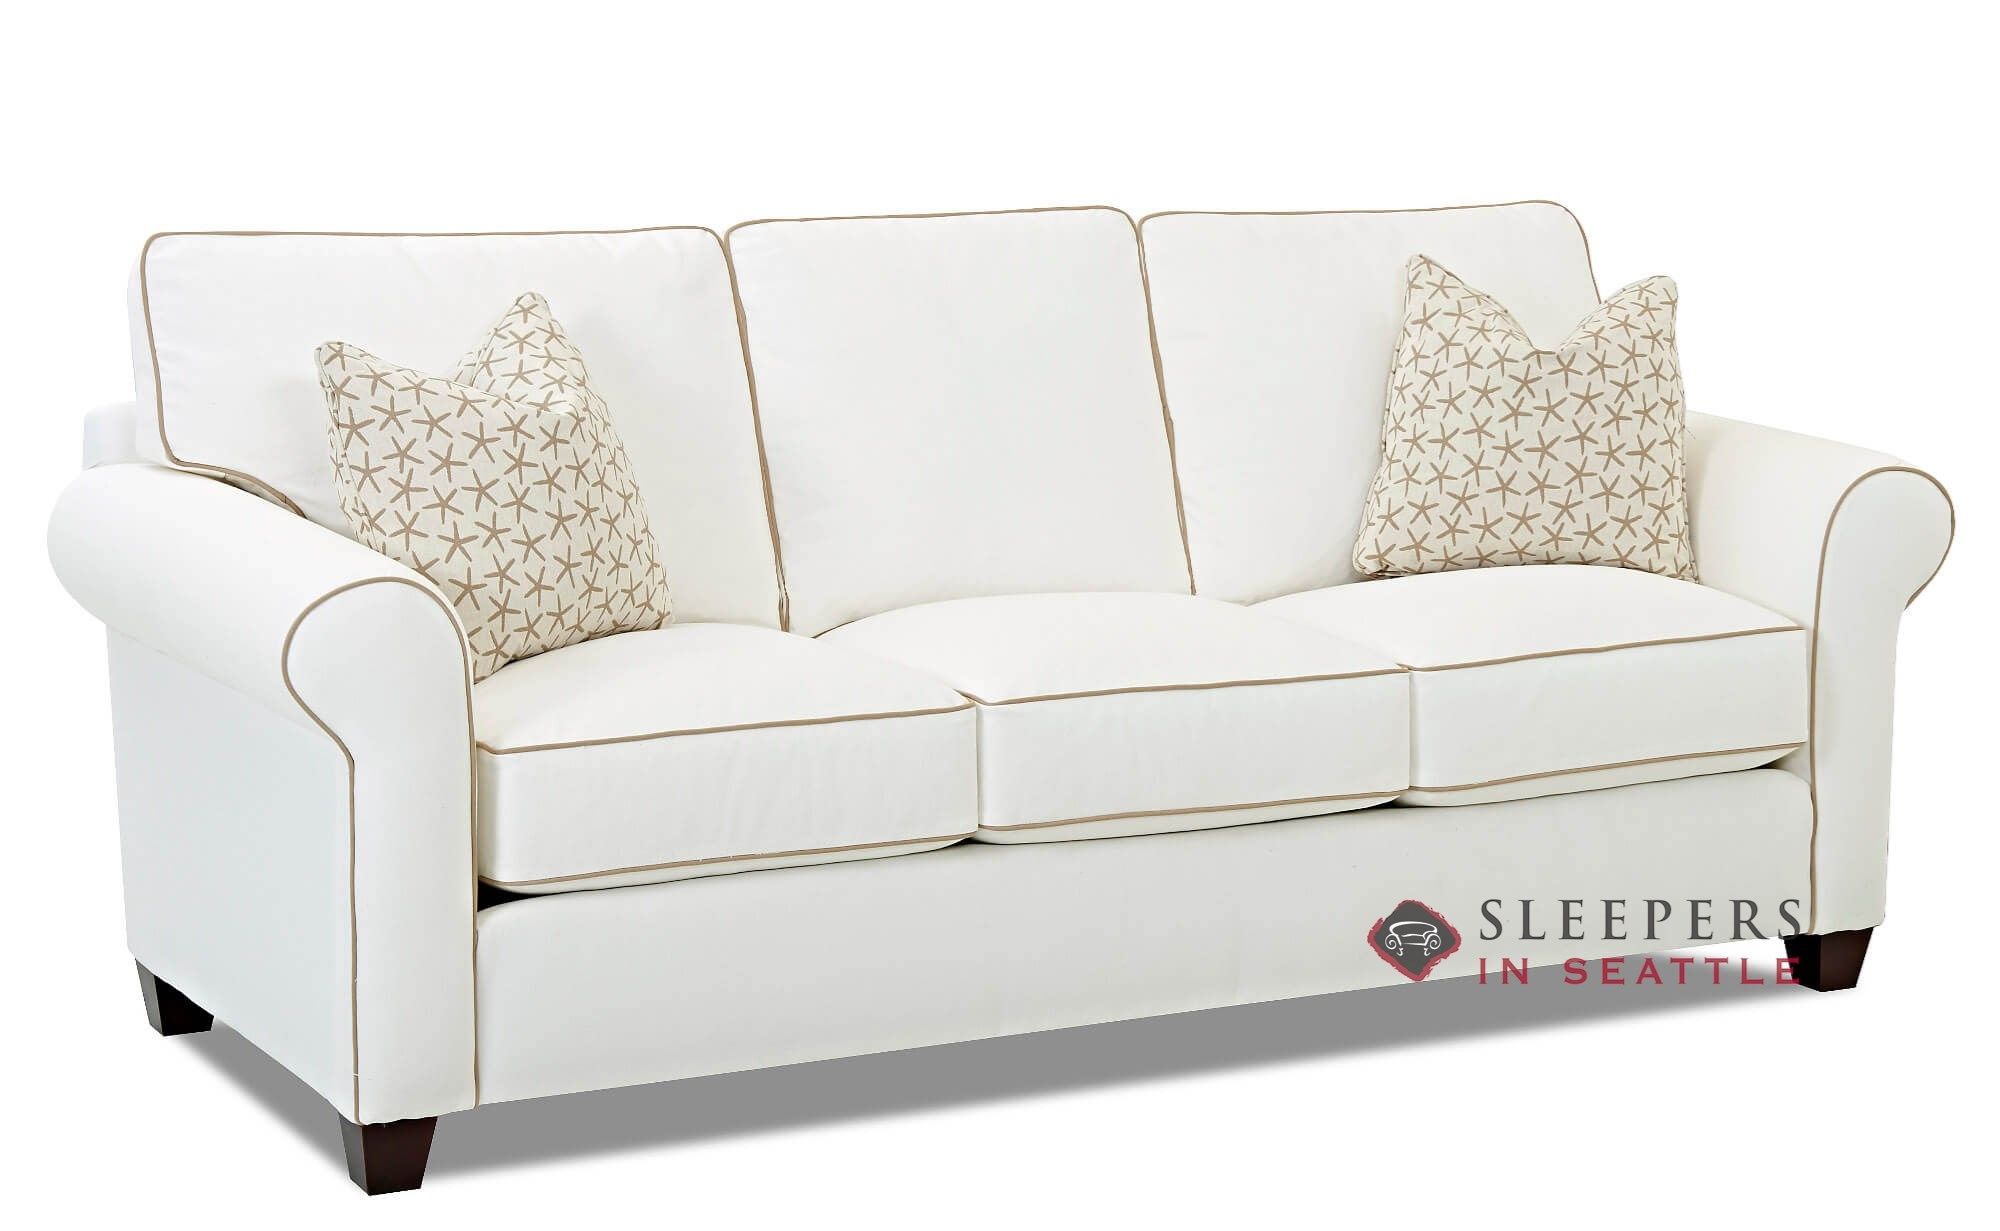 bed and sofa warehouse leeds set furniture customize personalize by savvy queen fabric